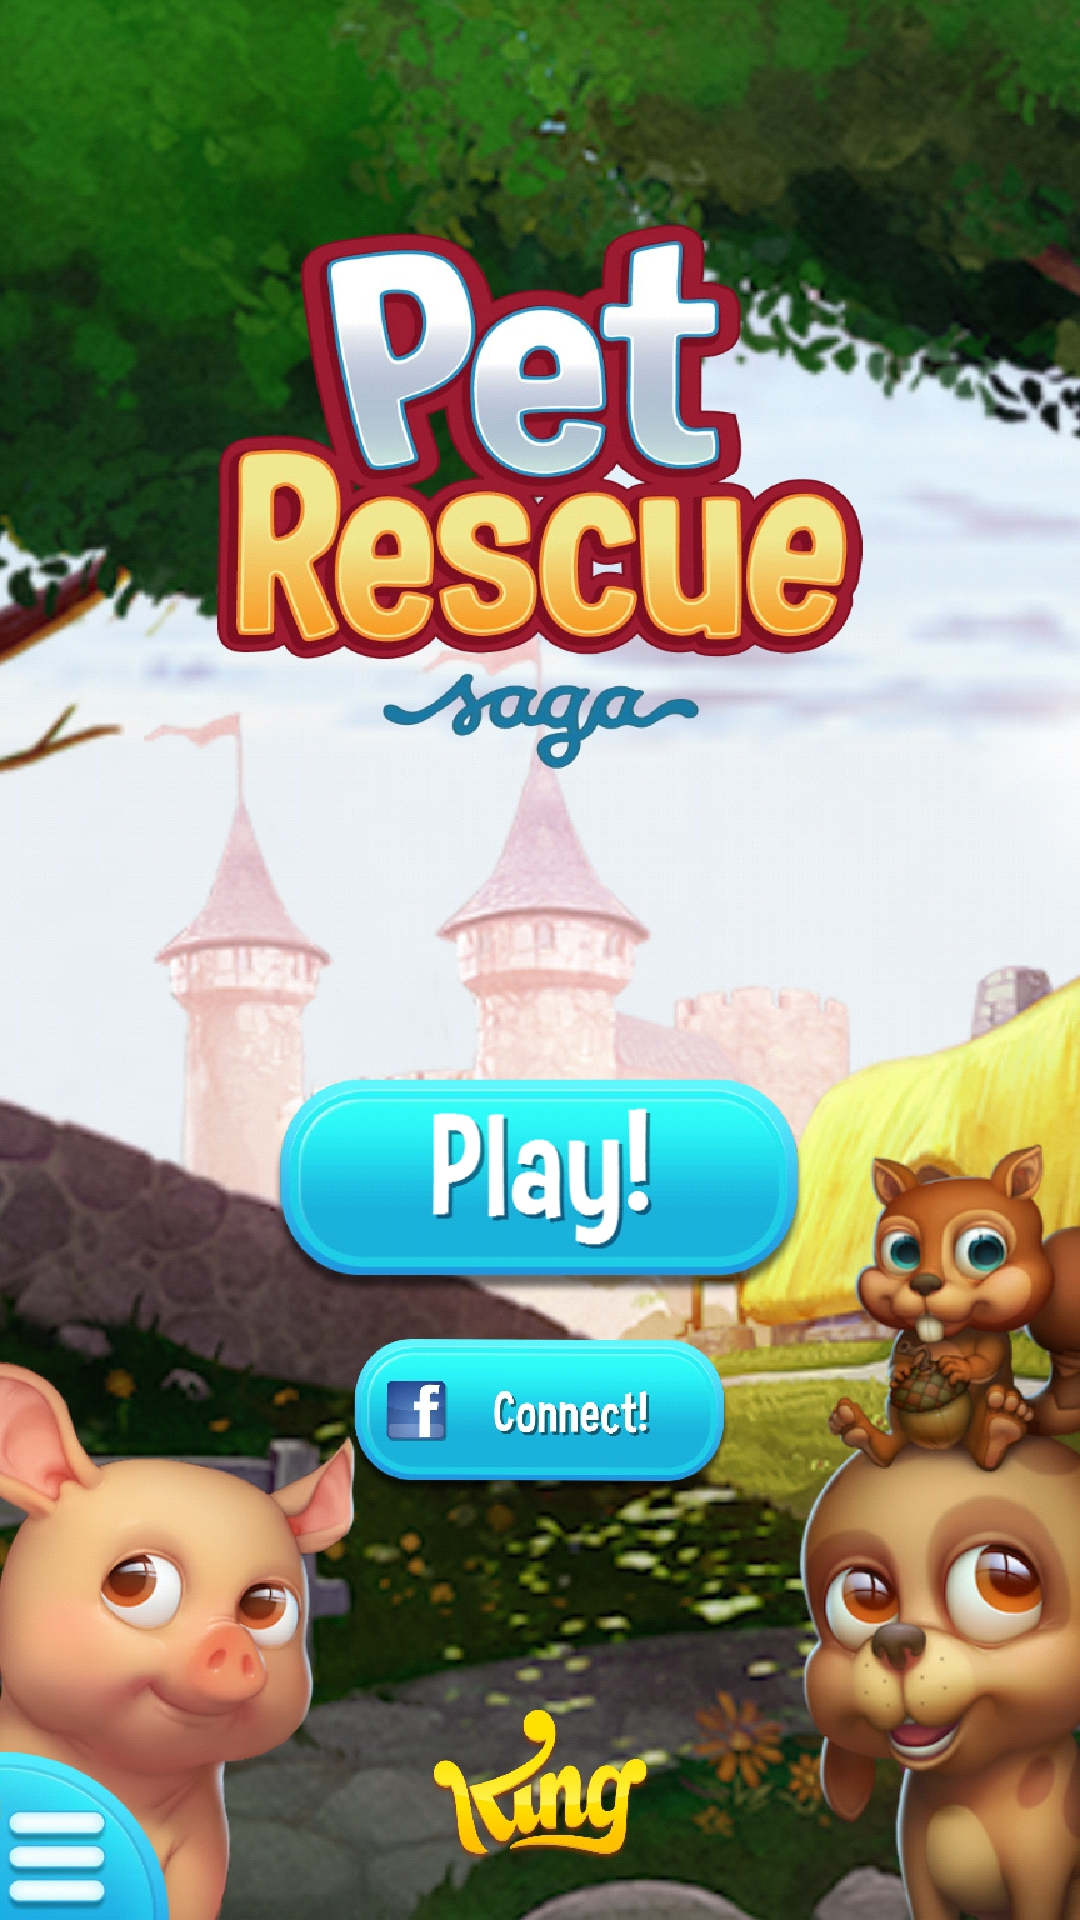 Bamse: Pet Rescue Saga: Level 003 (Android) 26,820 points on 2019-06-07 11:31:52